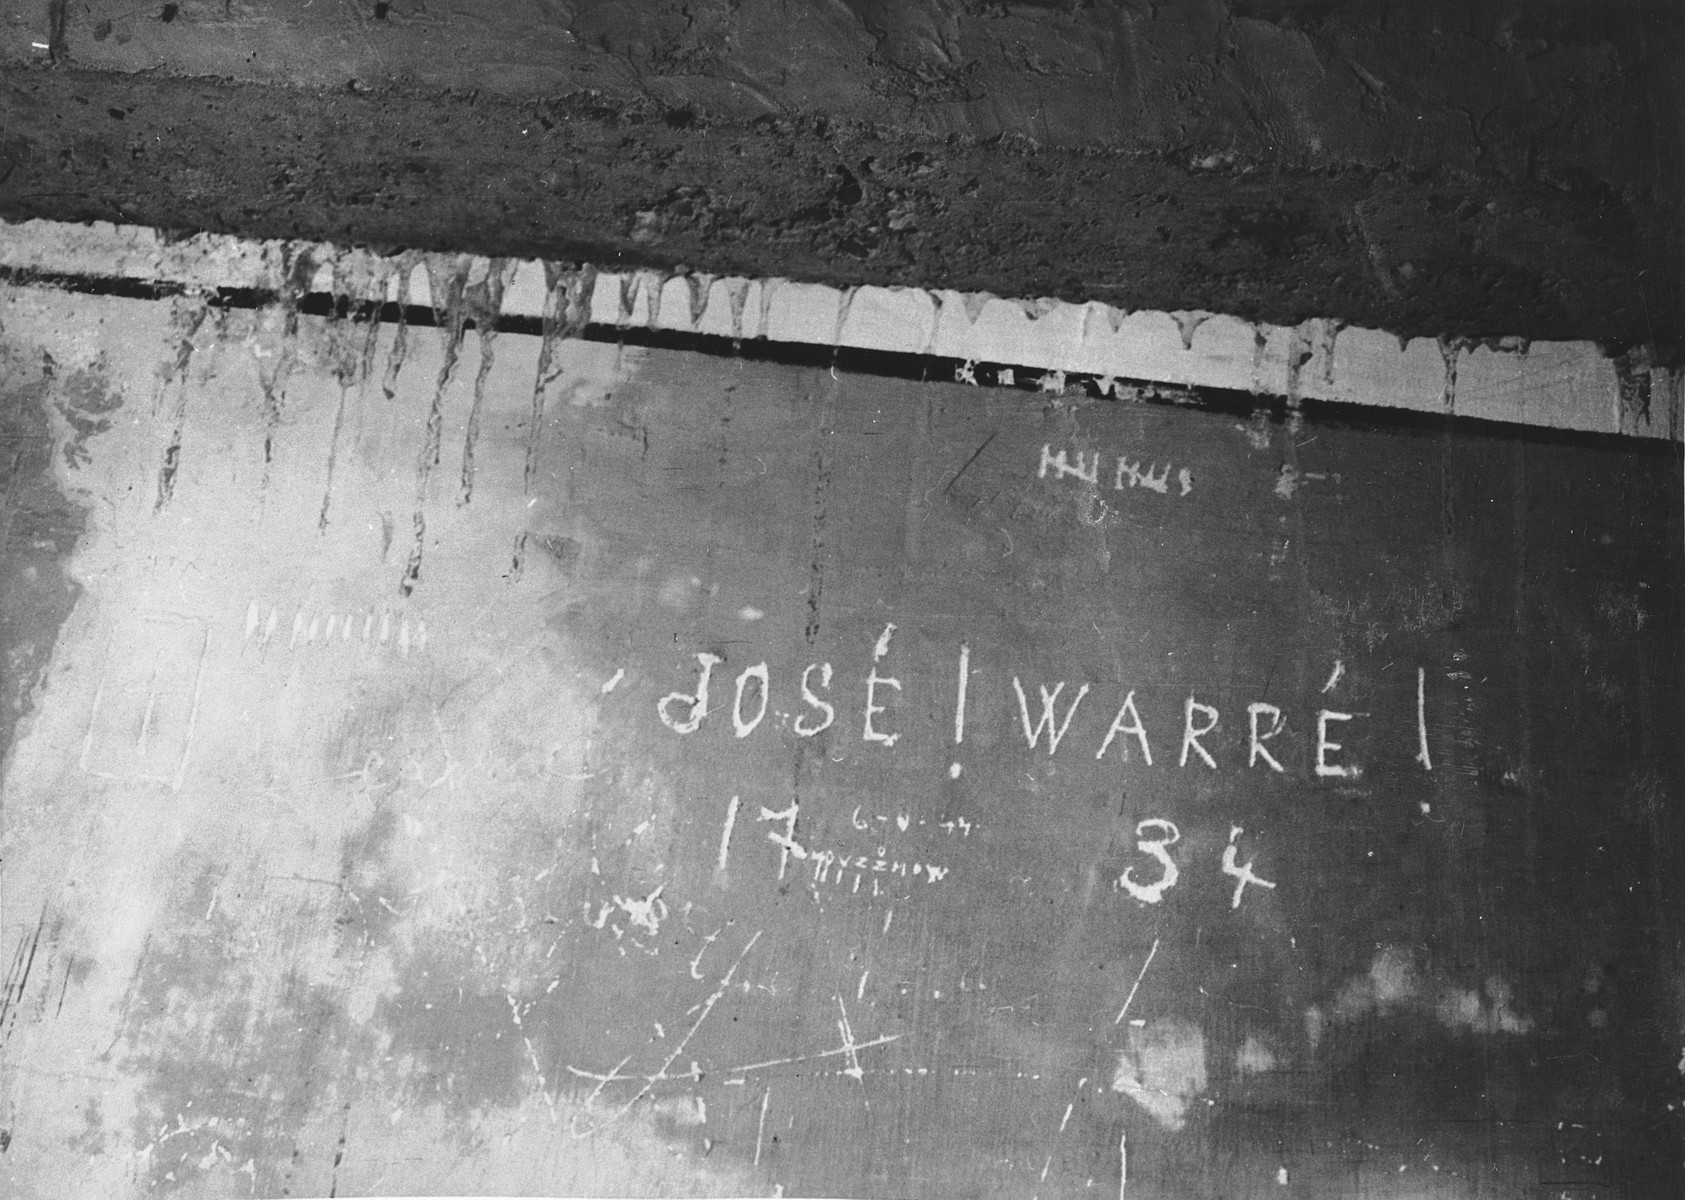 Prisoner name scratched on the wall of the Breendonck internment camp.